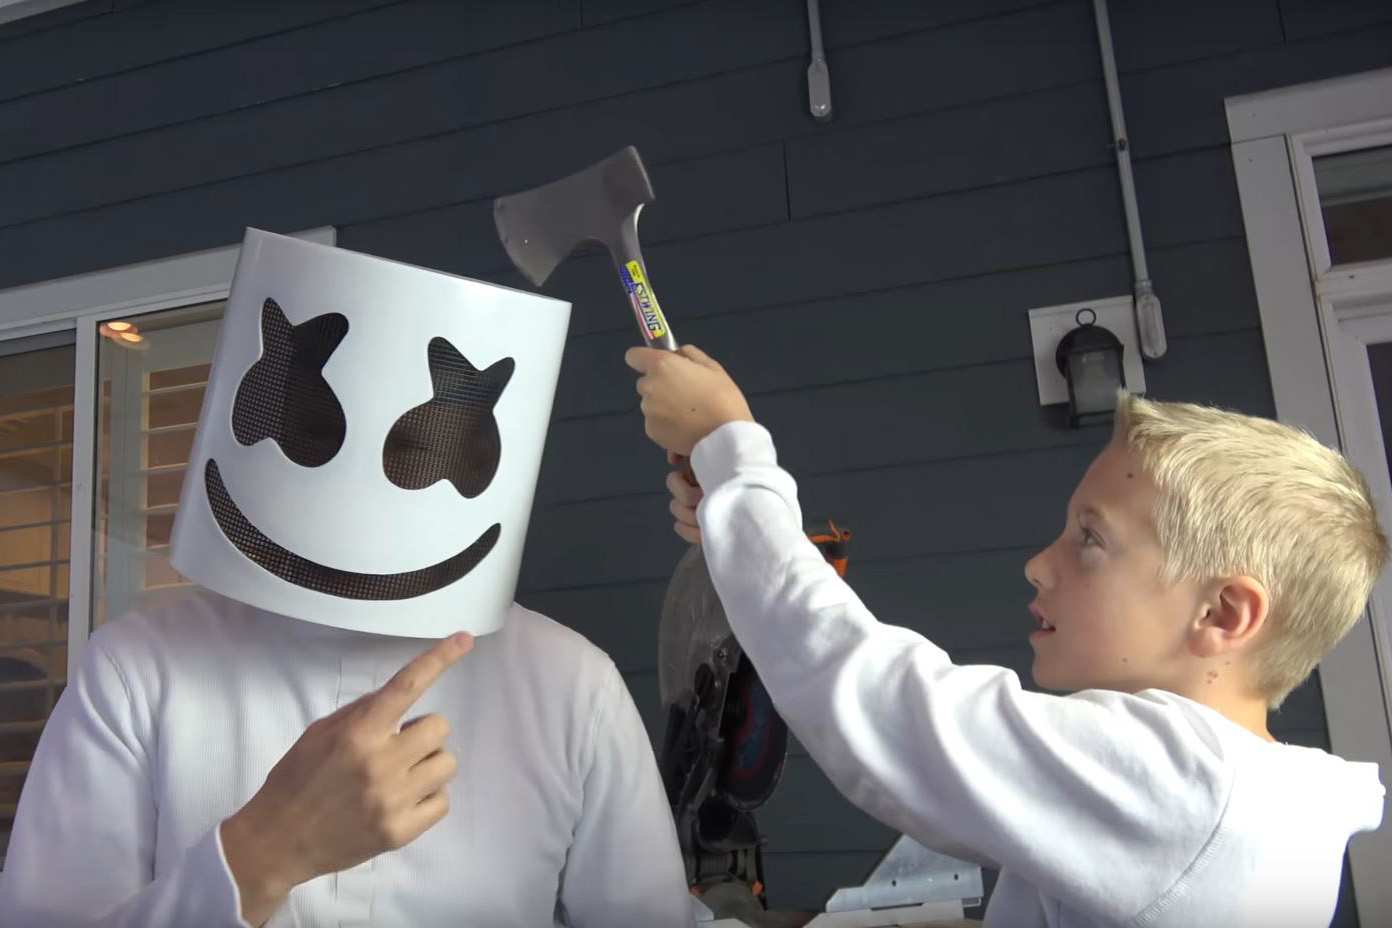 What's inside Marshmello's helmet?